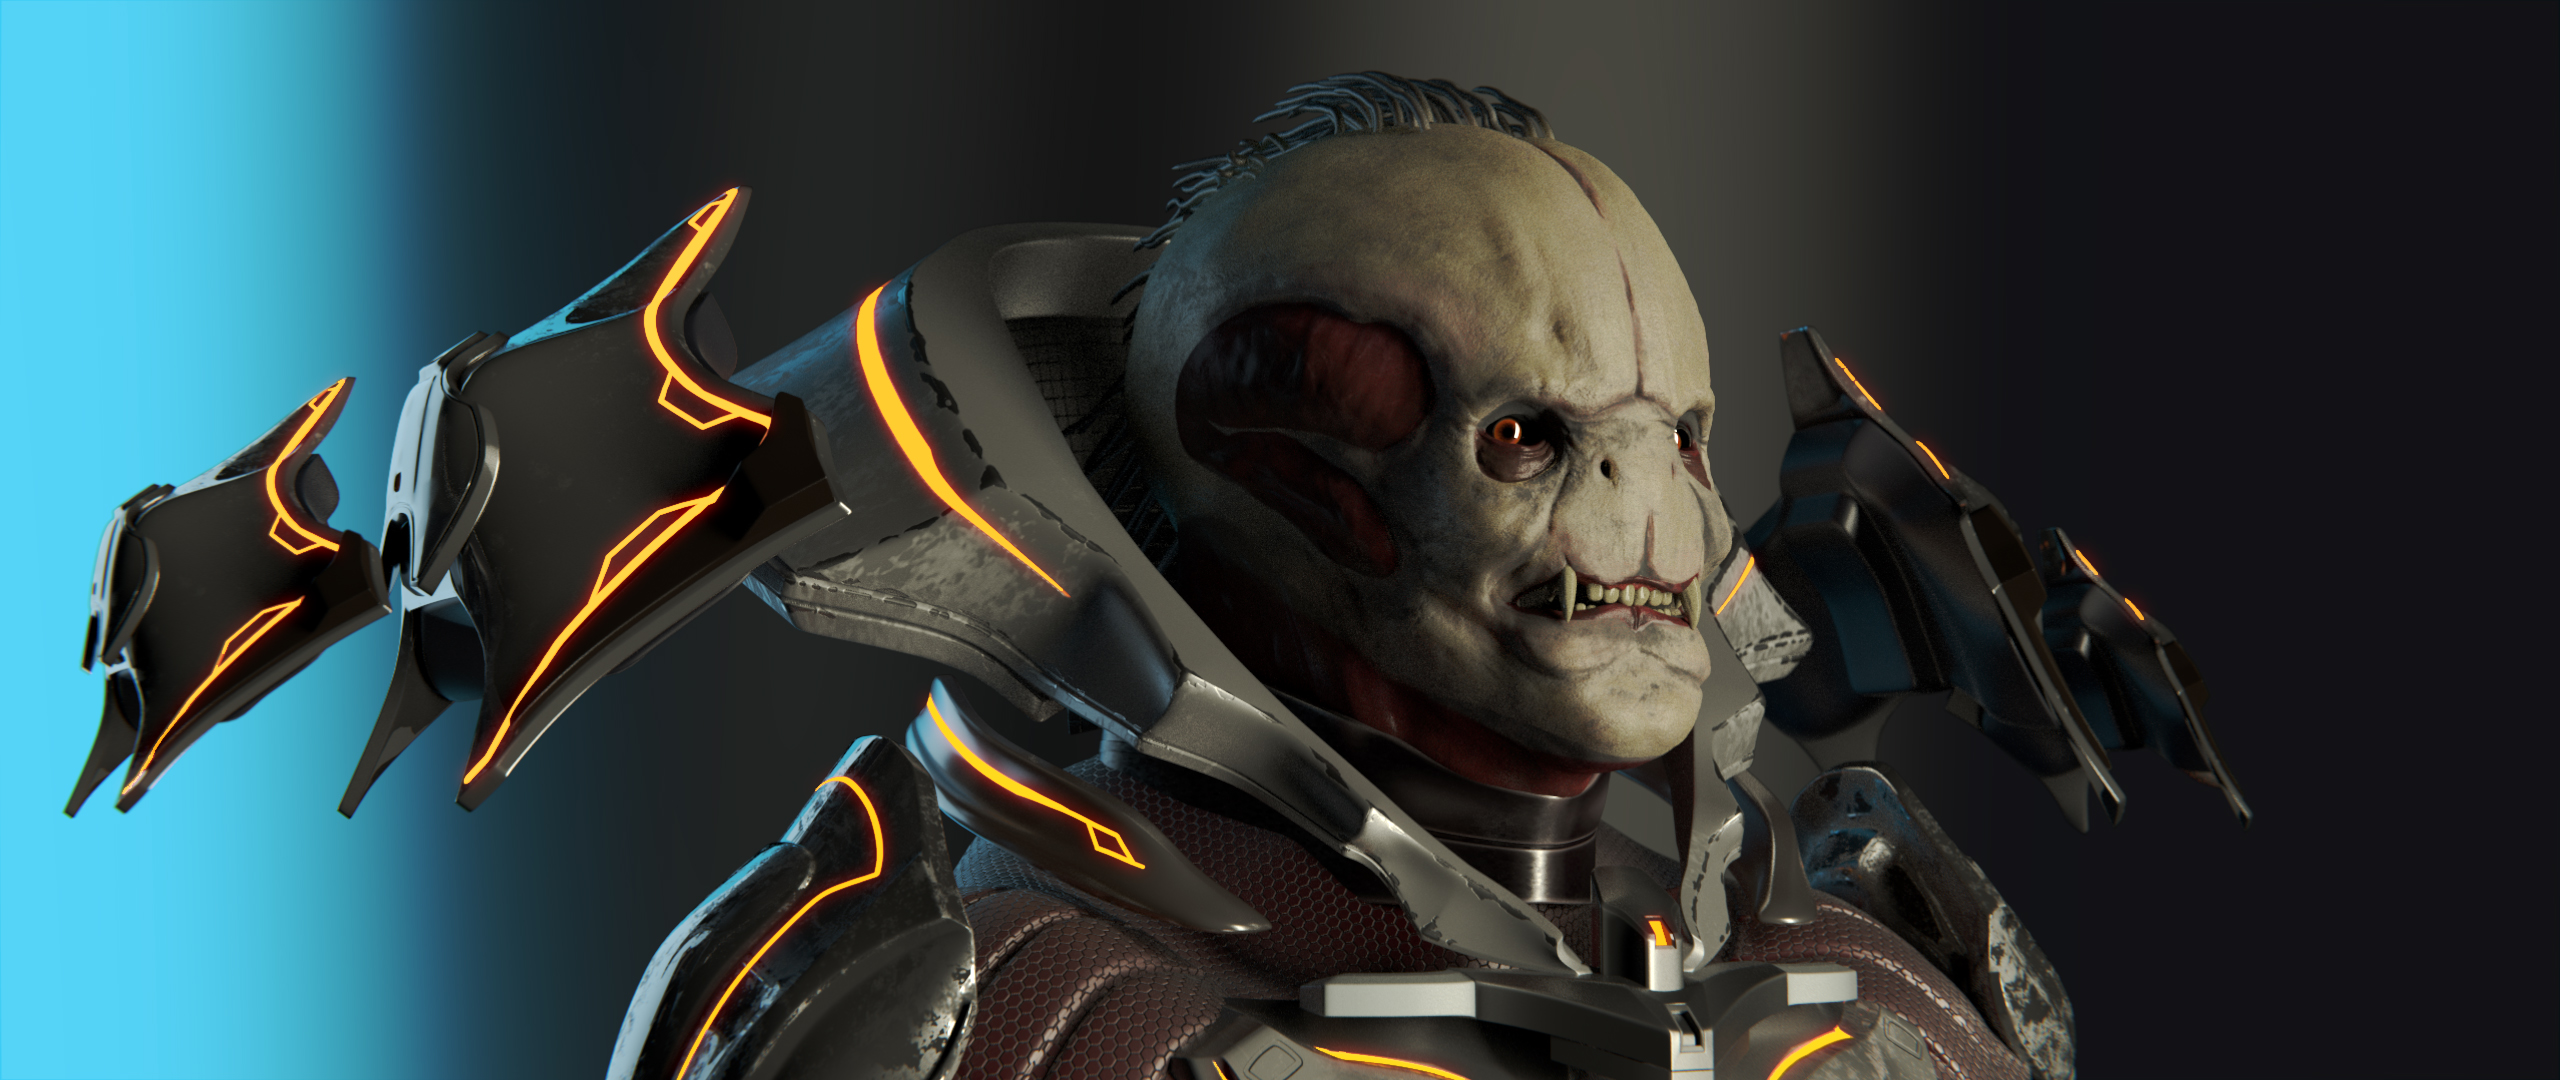 Didact Character (Halo) Fan Art